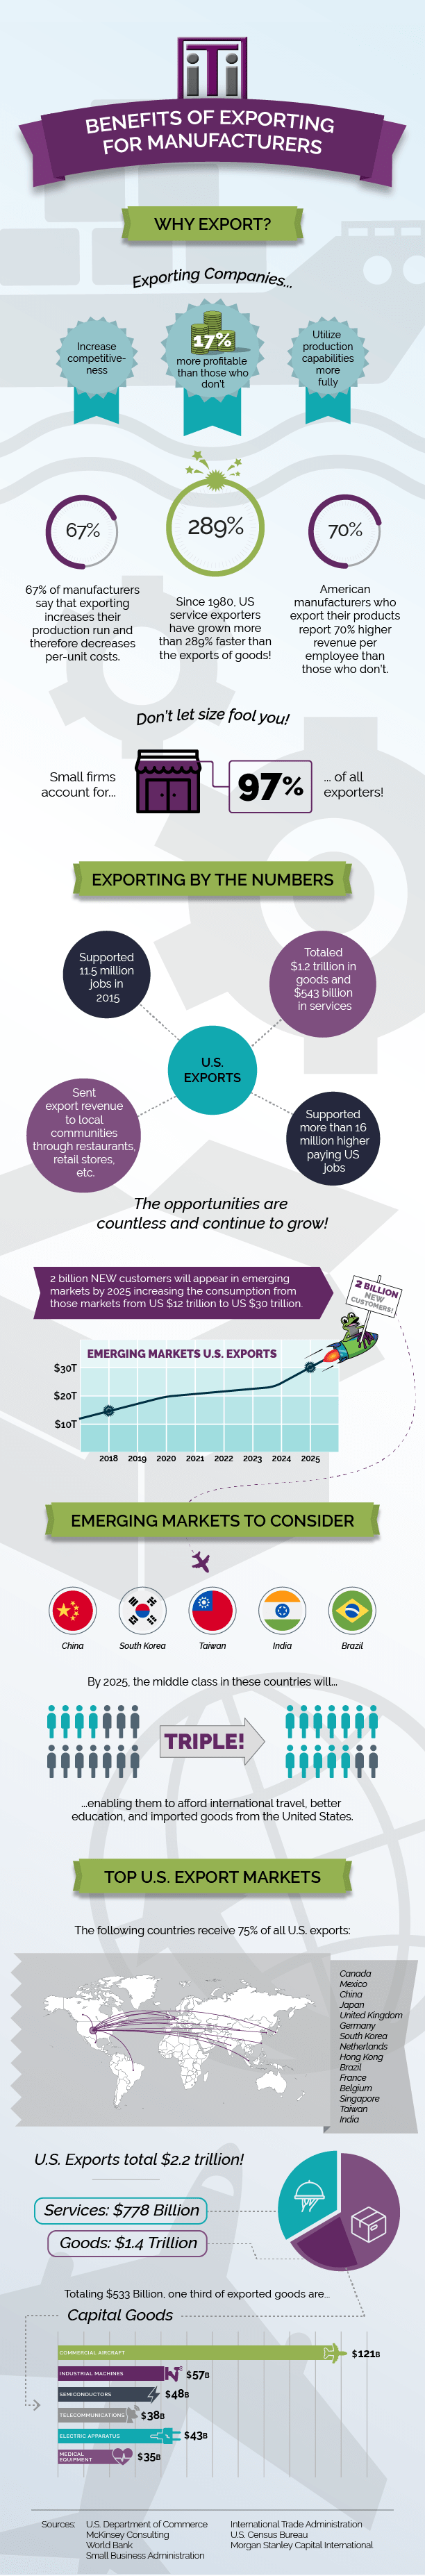 Infographic on the Benefits of Exporting in Manufacturing